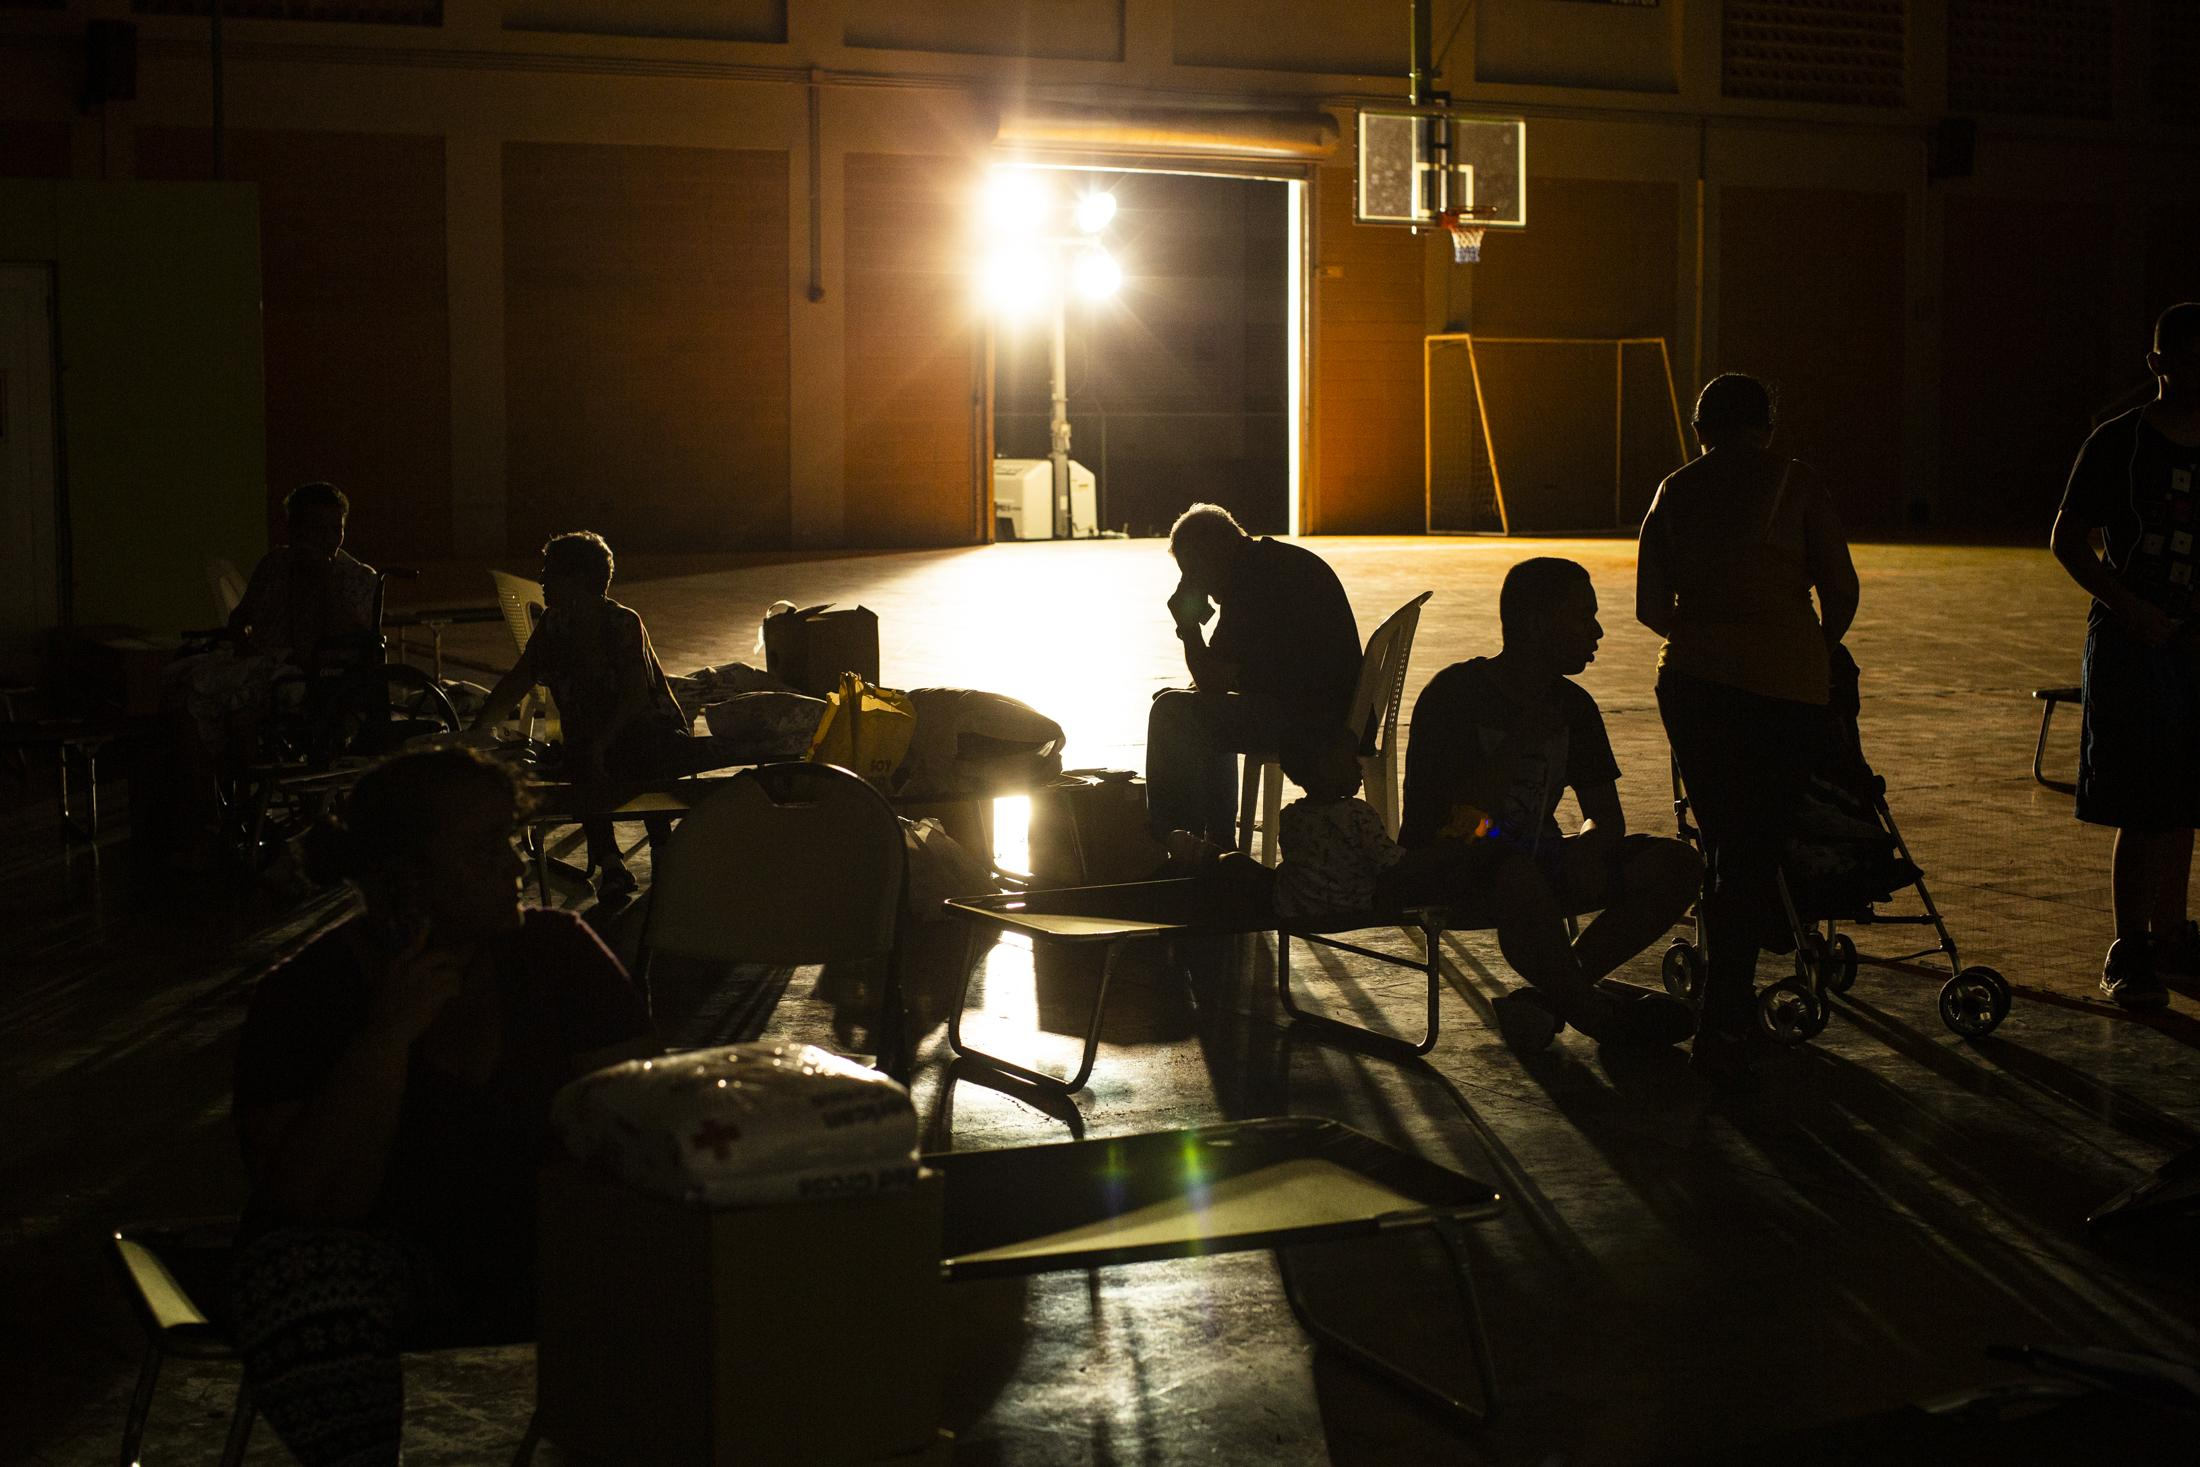 """People take shelter at the Coliseo Mariano """"Tito"""" Rodriguez in Guánica, P.R., on January 6, 2020. After a 5.8 earthquake hit the south of the island in the early morning multiple homes were damaged near the epicenter. The area has been active since Dec. 28, 2019 and replicas have continued to be felt.(Erika P. Rodriguez for The New York Times)"""